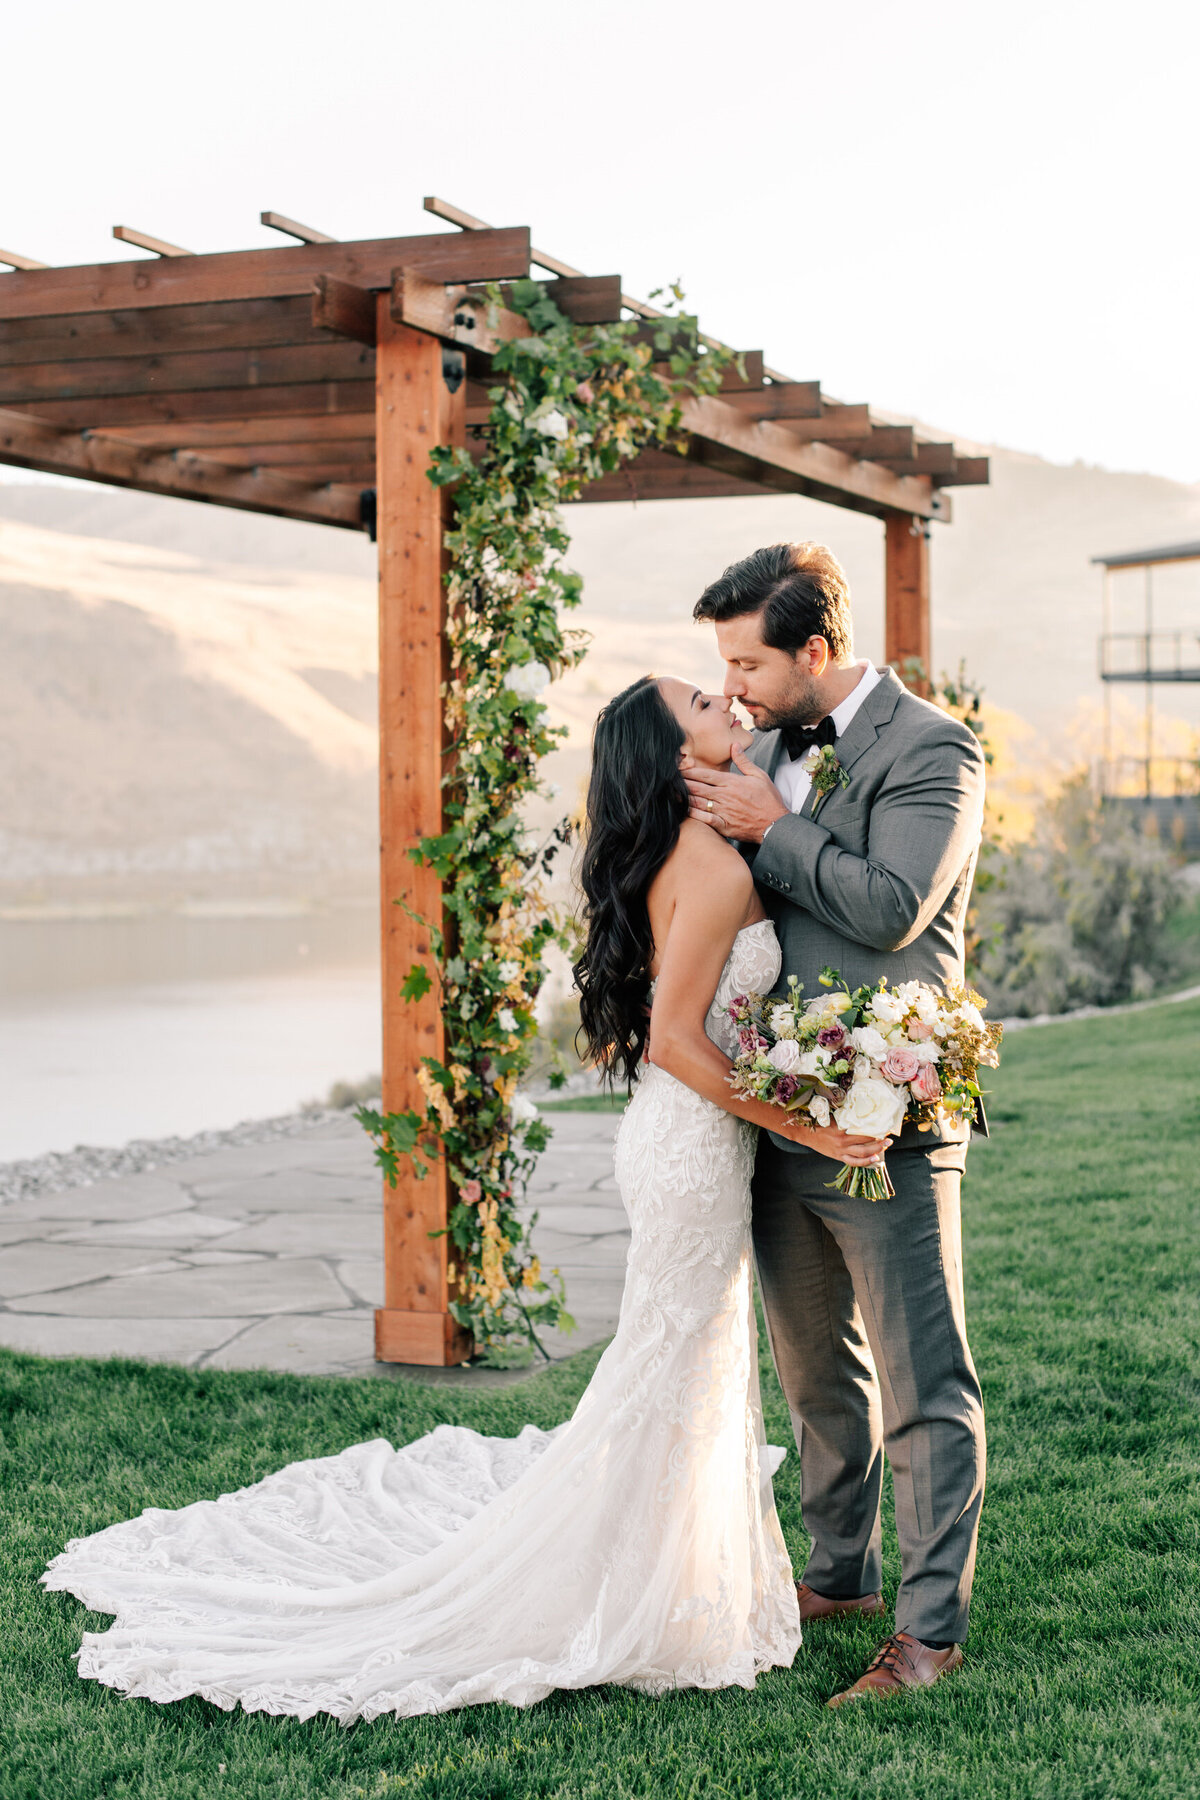 Romantic lakeside wedding at The Lookout in Chelan, WA by Ellie Haisch Events